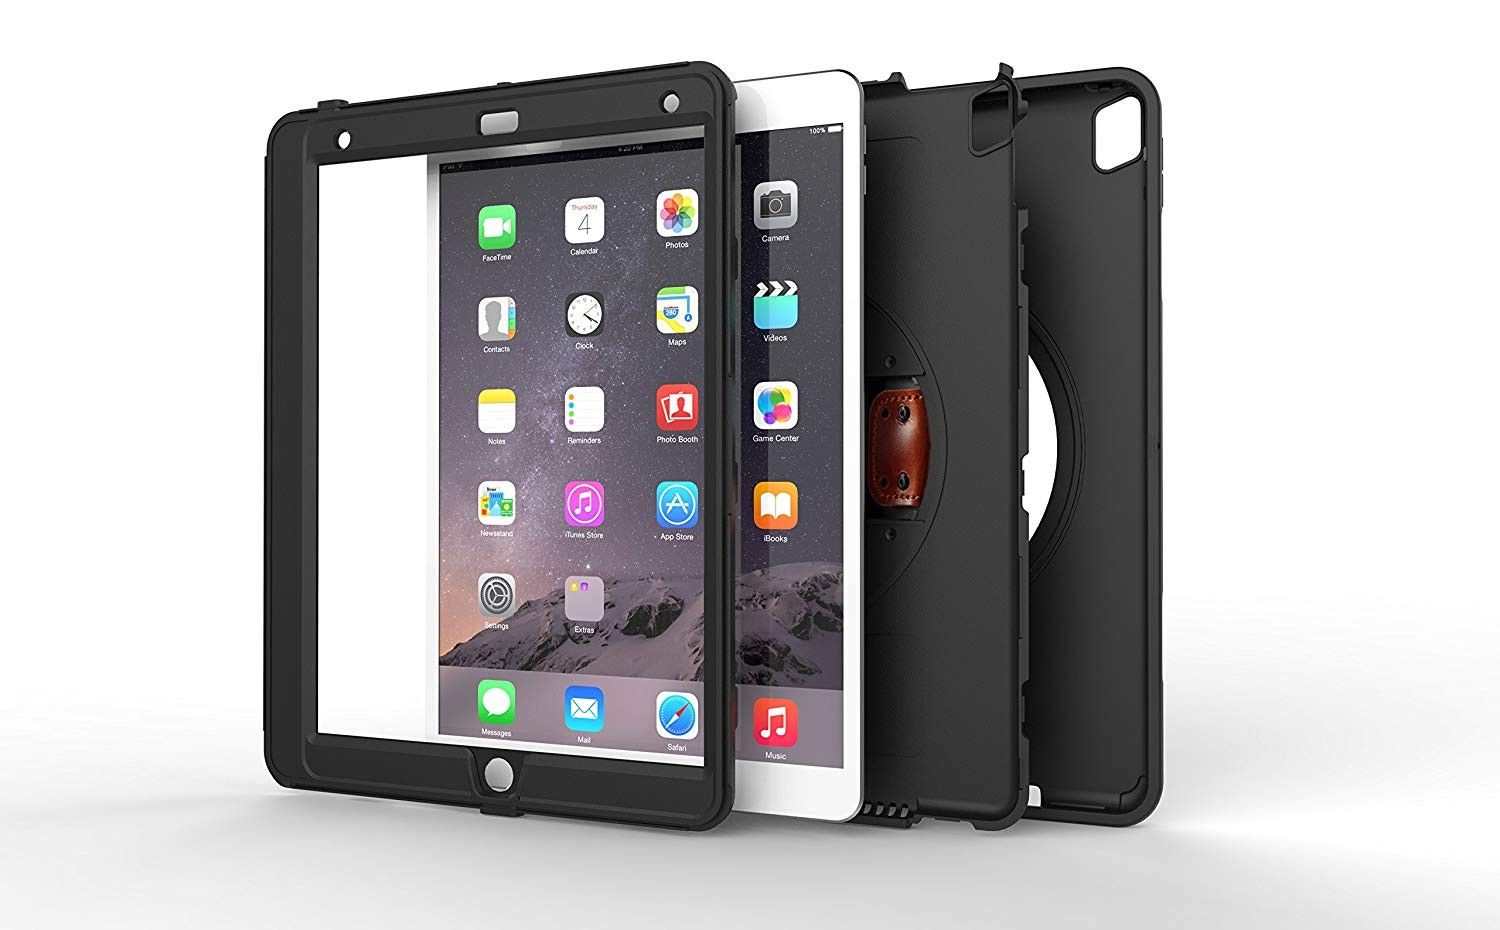 New Trent iPad Pro Case / iPad Air 3 - Gladius Pro 10.5 Inch Case, Full-body Rugged Protective Case with 360-Degree Rotatable Hand Strap, Built-in Screen Protector, Kickstand - Apple Pencil Compartment, NT615GR